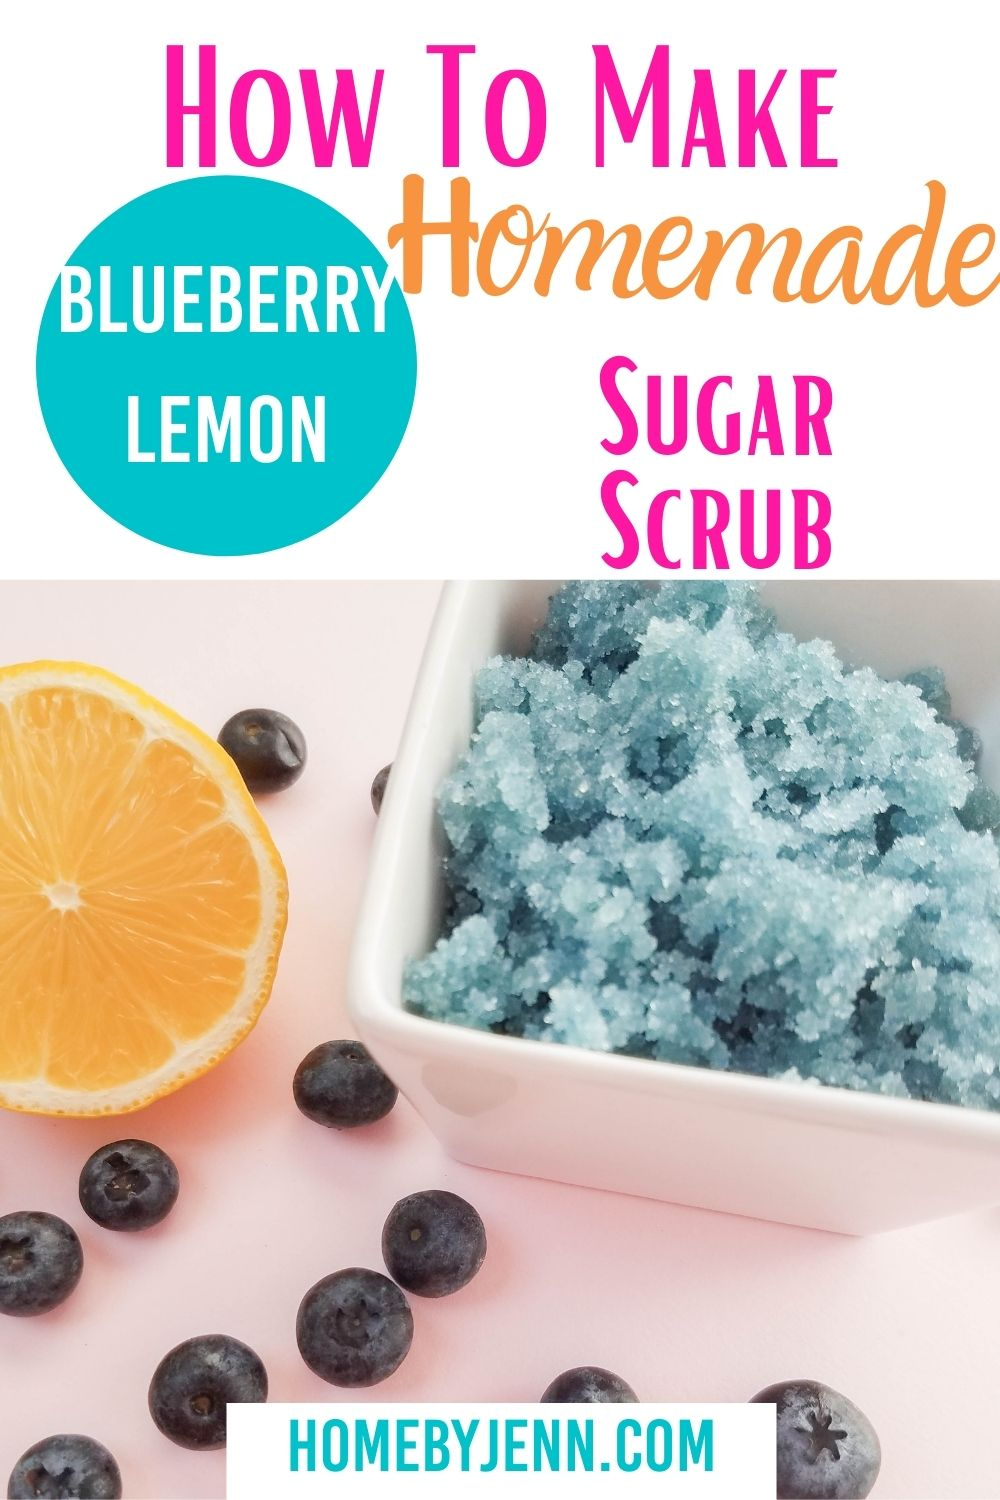 This blueberry lemon homemade sugar scrub is simple and easy to make. The recipe for sugar scrub uses only 4 simple ingredients making a perfect homemade gift. You'll love the smell and feel of this blueberry lemon sugar scrub! #DIY #homemade #blueberry #lemon #sugarscrub #beauty #naturalliving via @homebyjenn